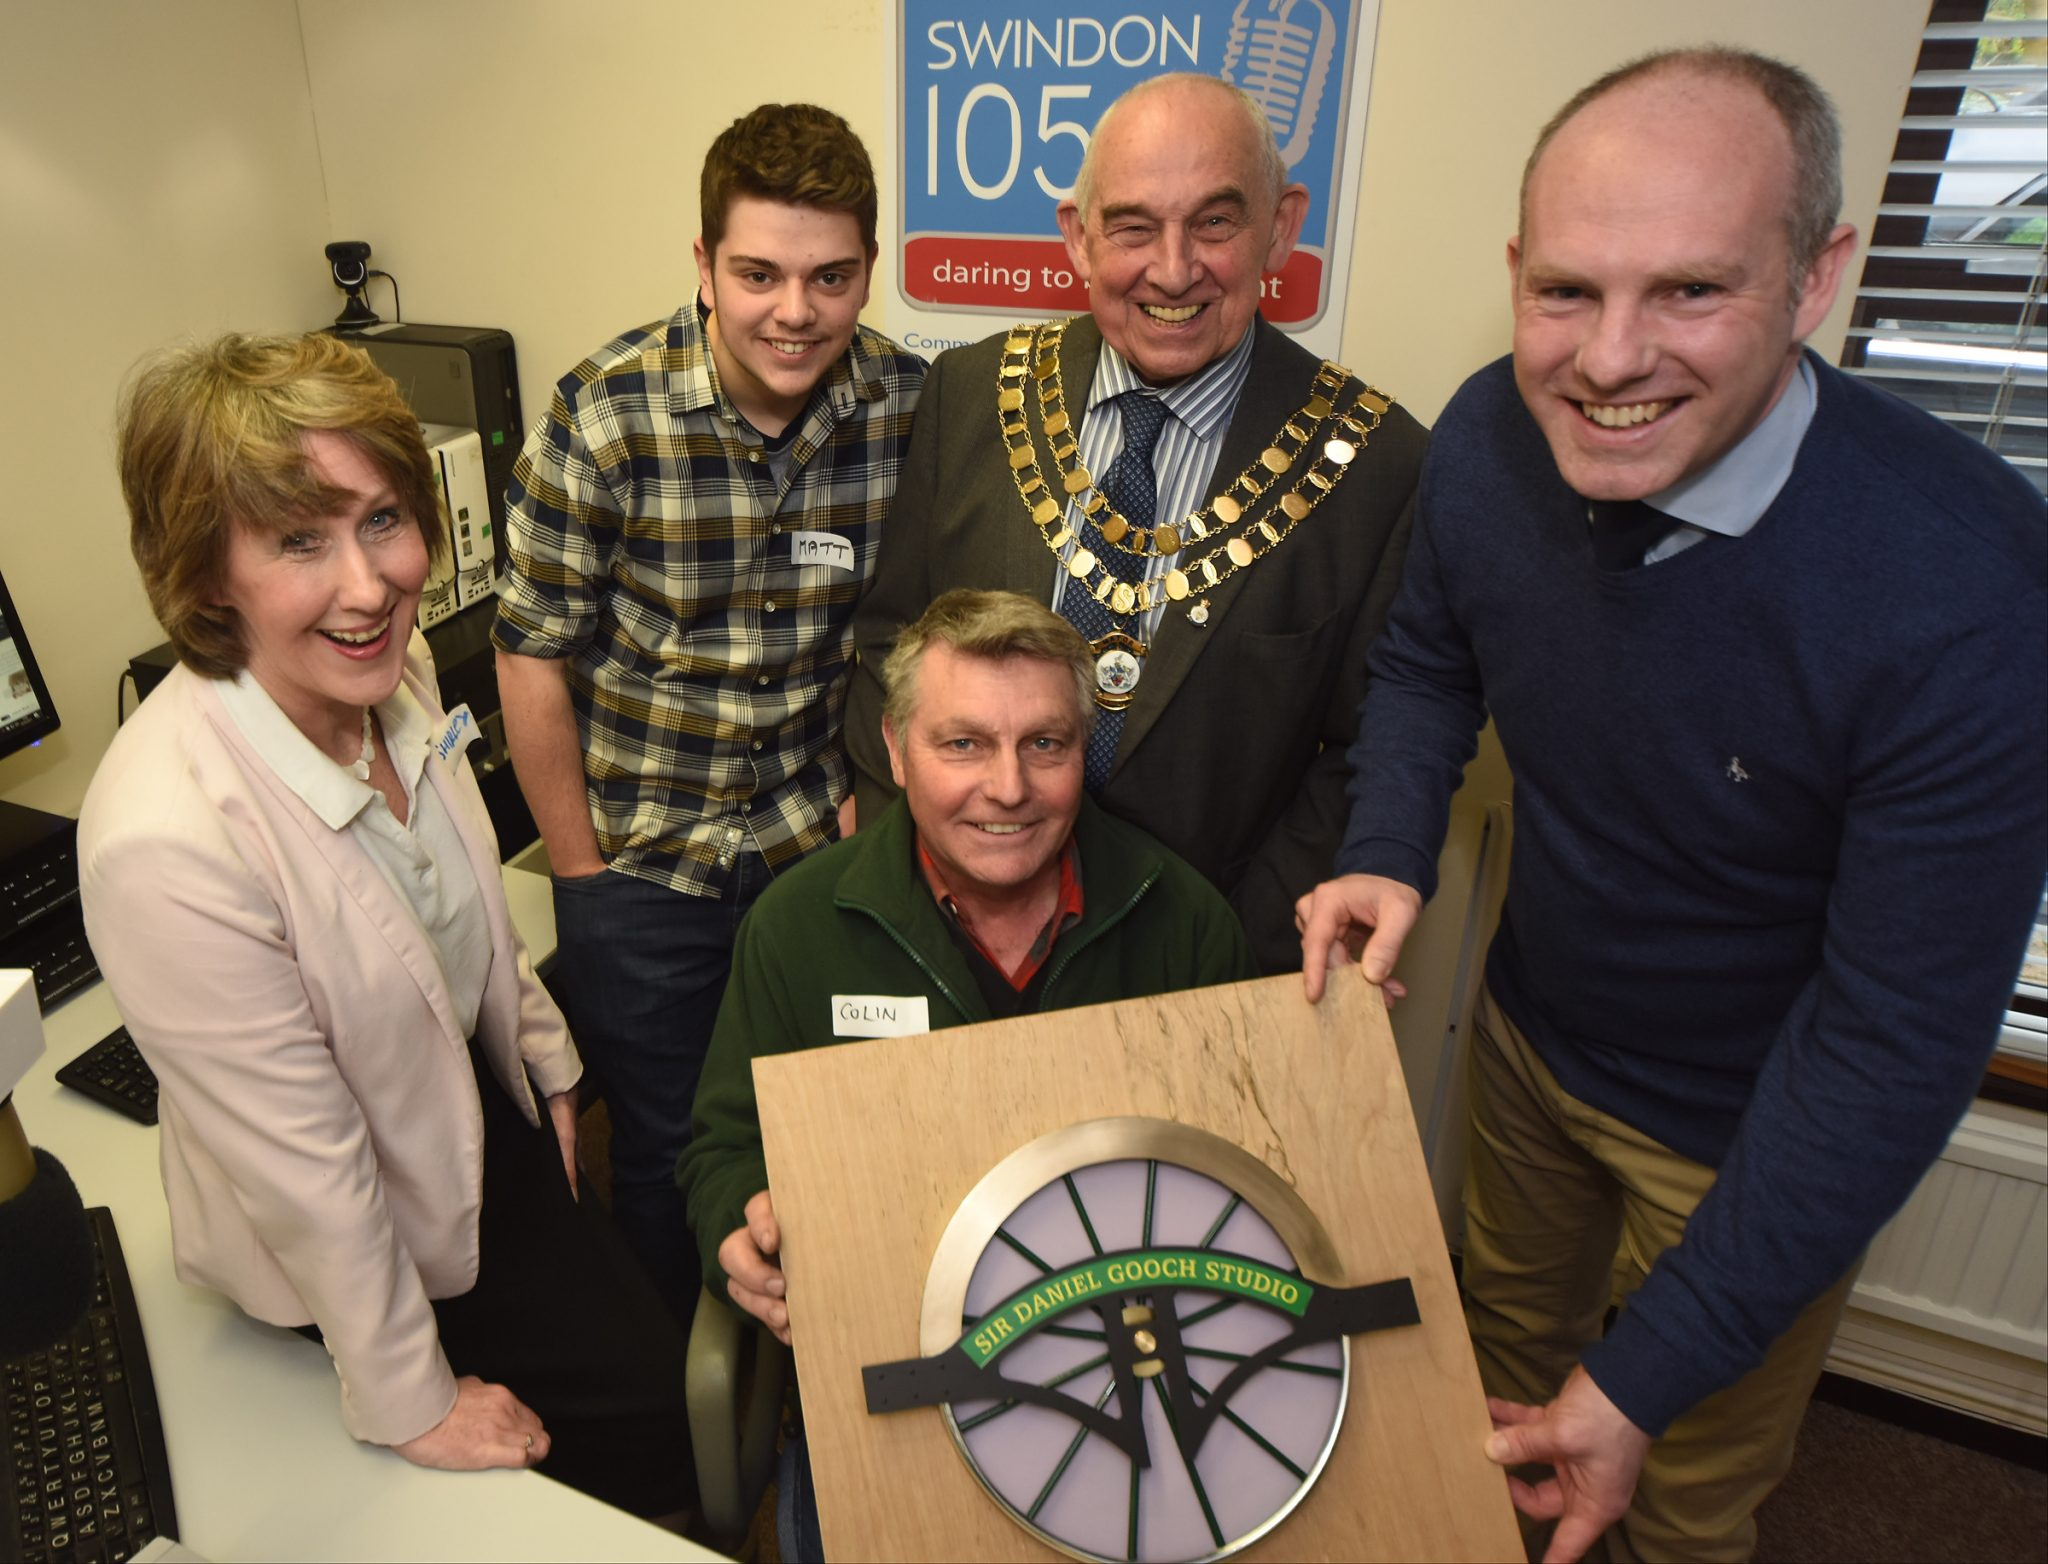 Community Radio service Swindon 105.5 celebrates nine years on air with launch of new studio